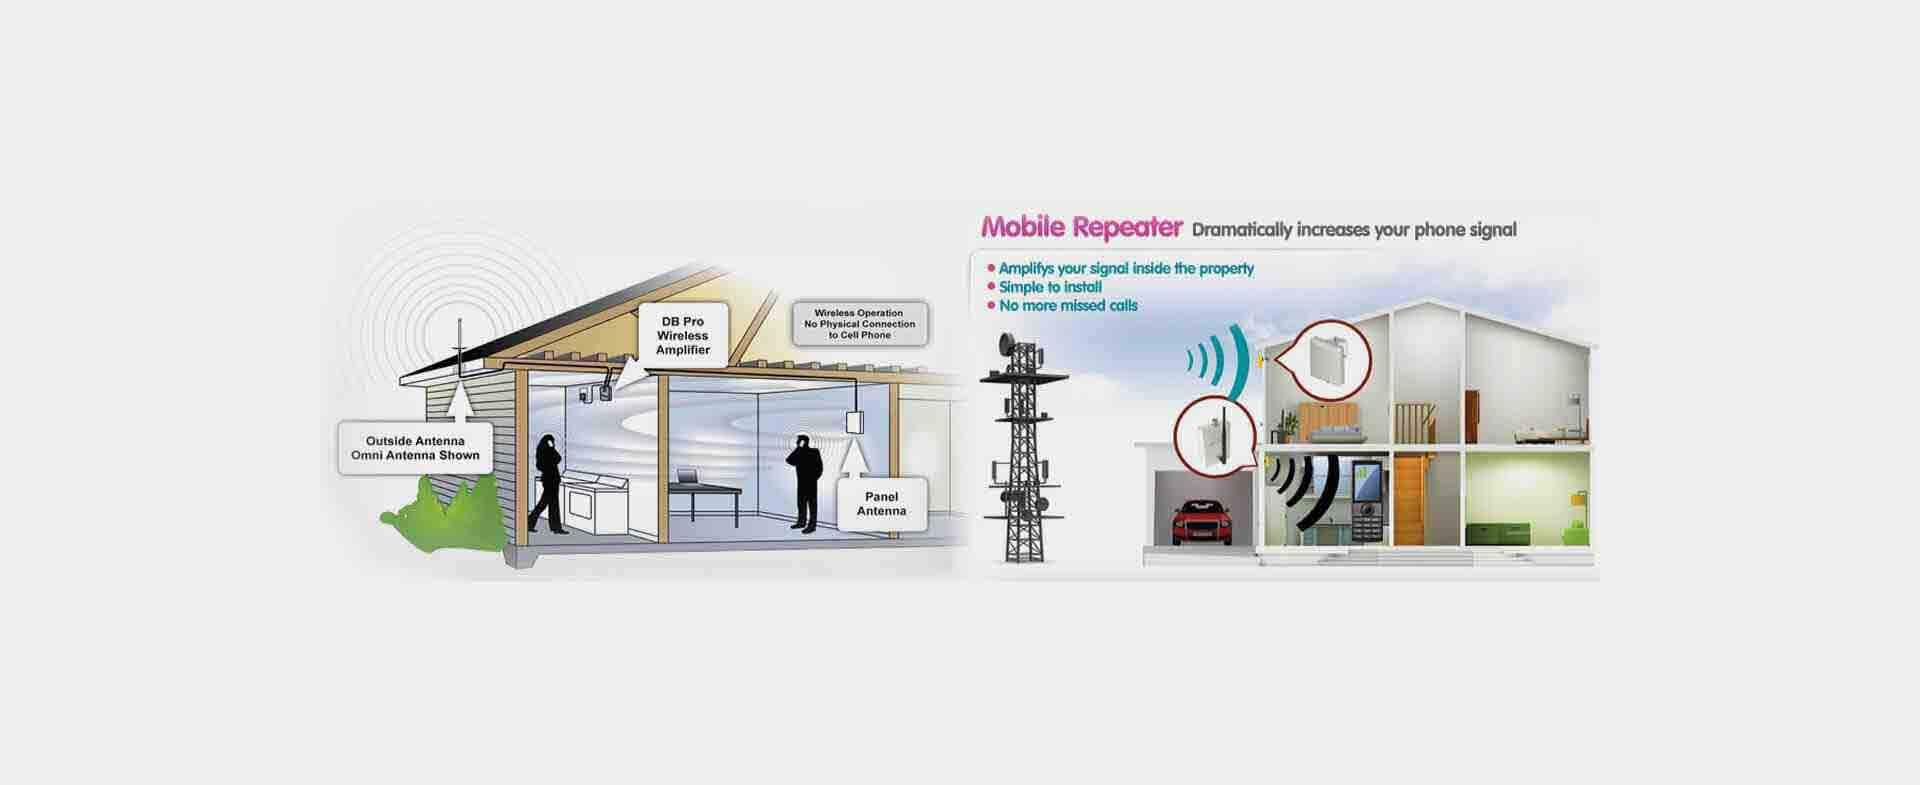 Mobile Signal Booster in Delhi | 4G Mobile Signal Network Booster